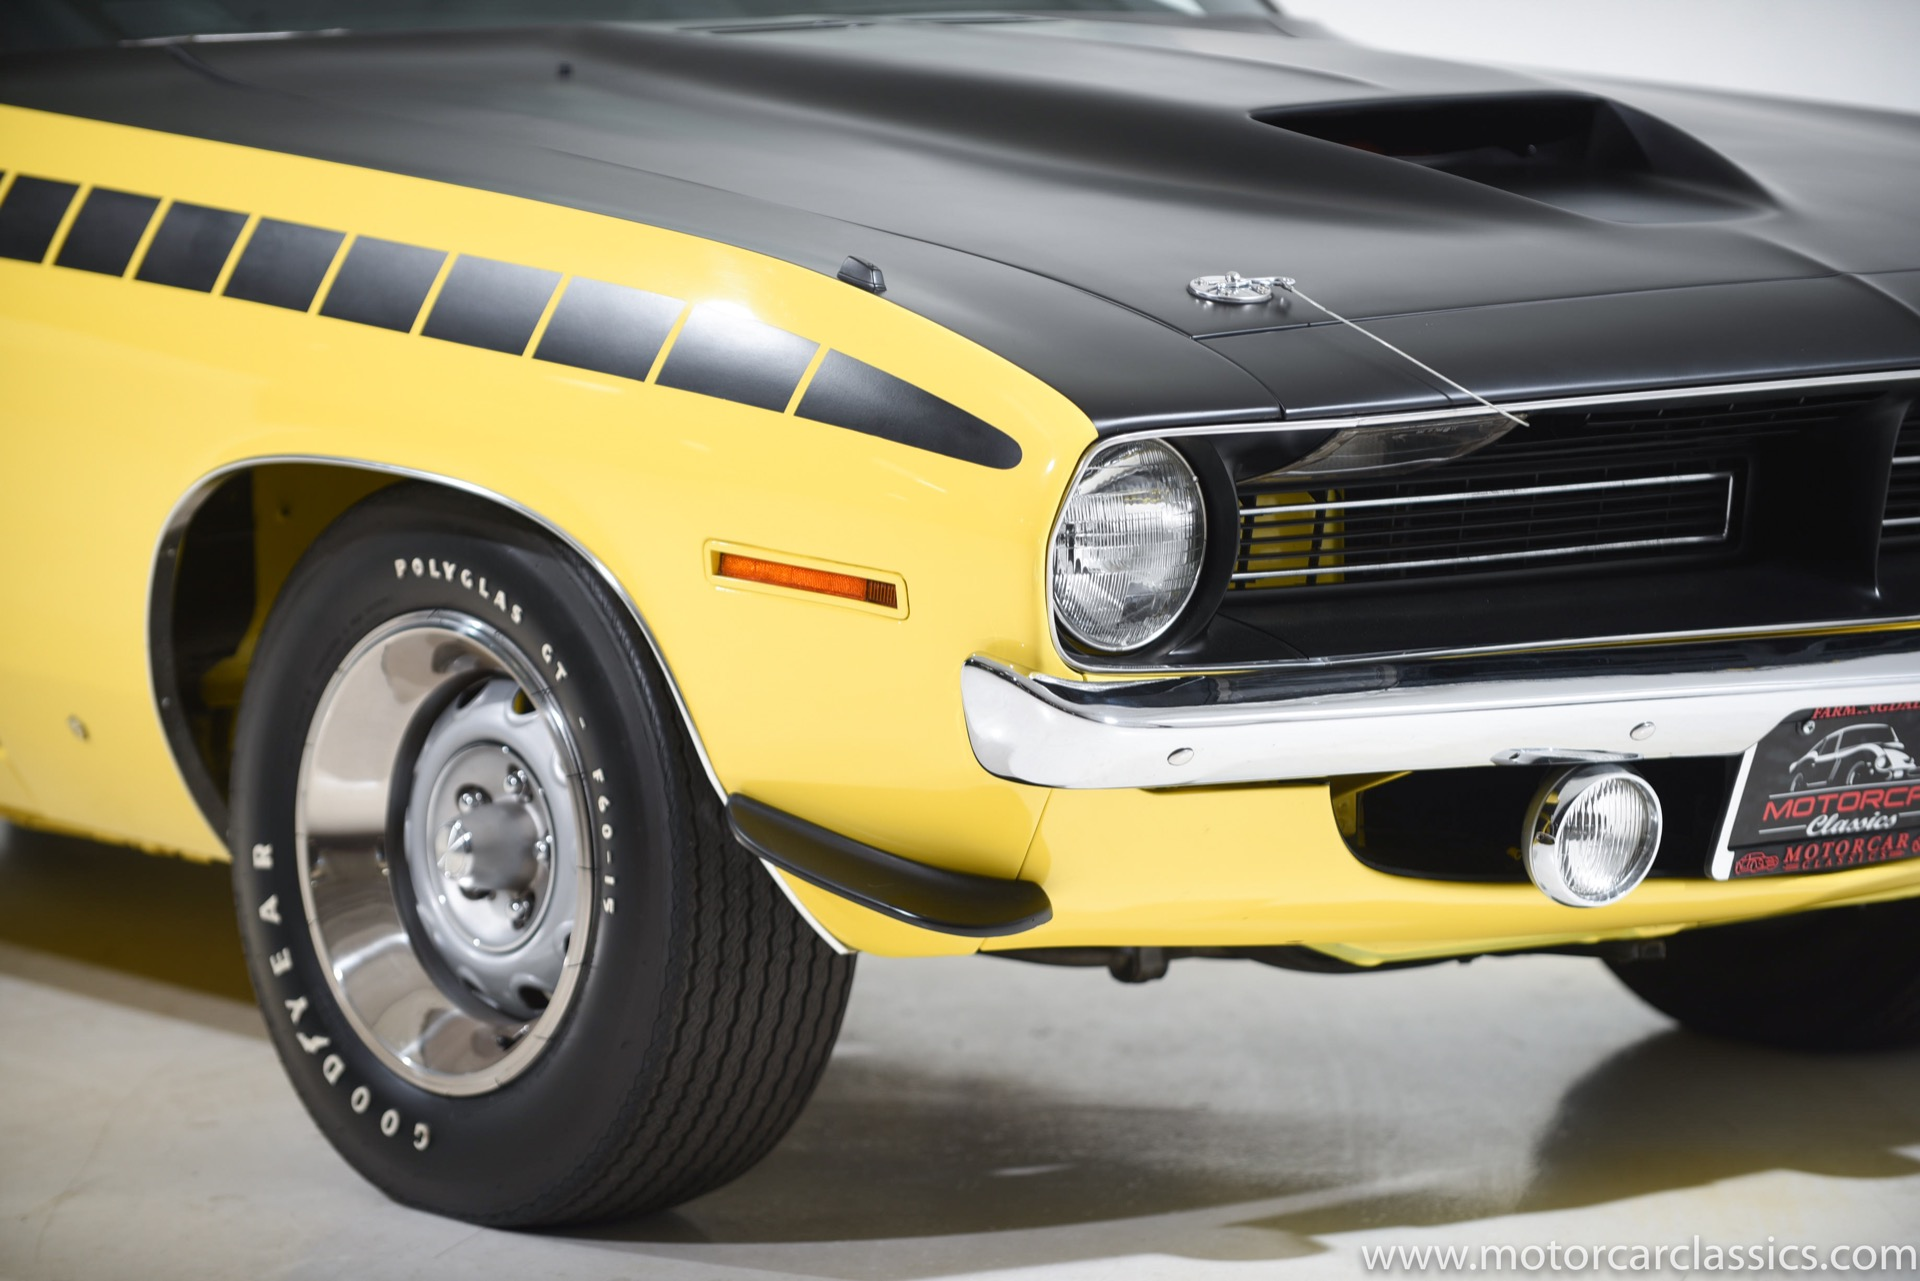 Used 1970 Plymouth Barracuda AAR For Sale ($79,900) | Motorcar